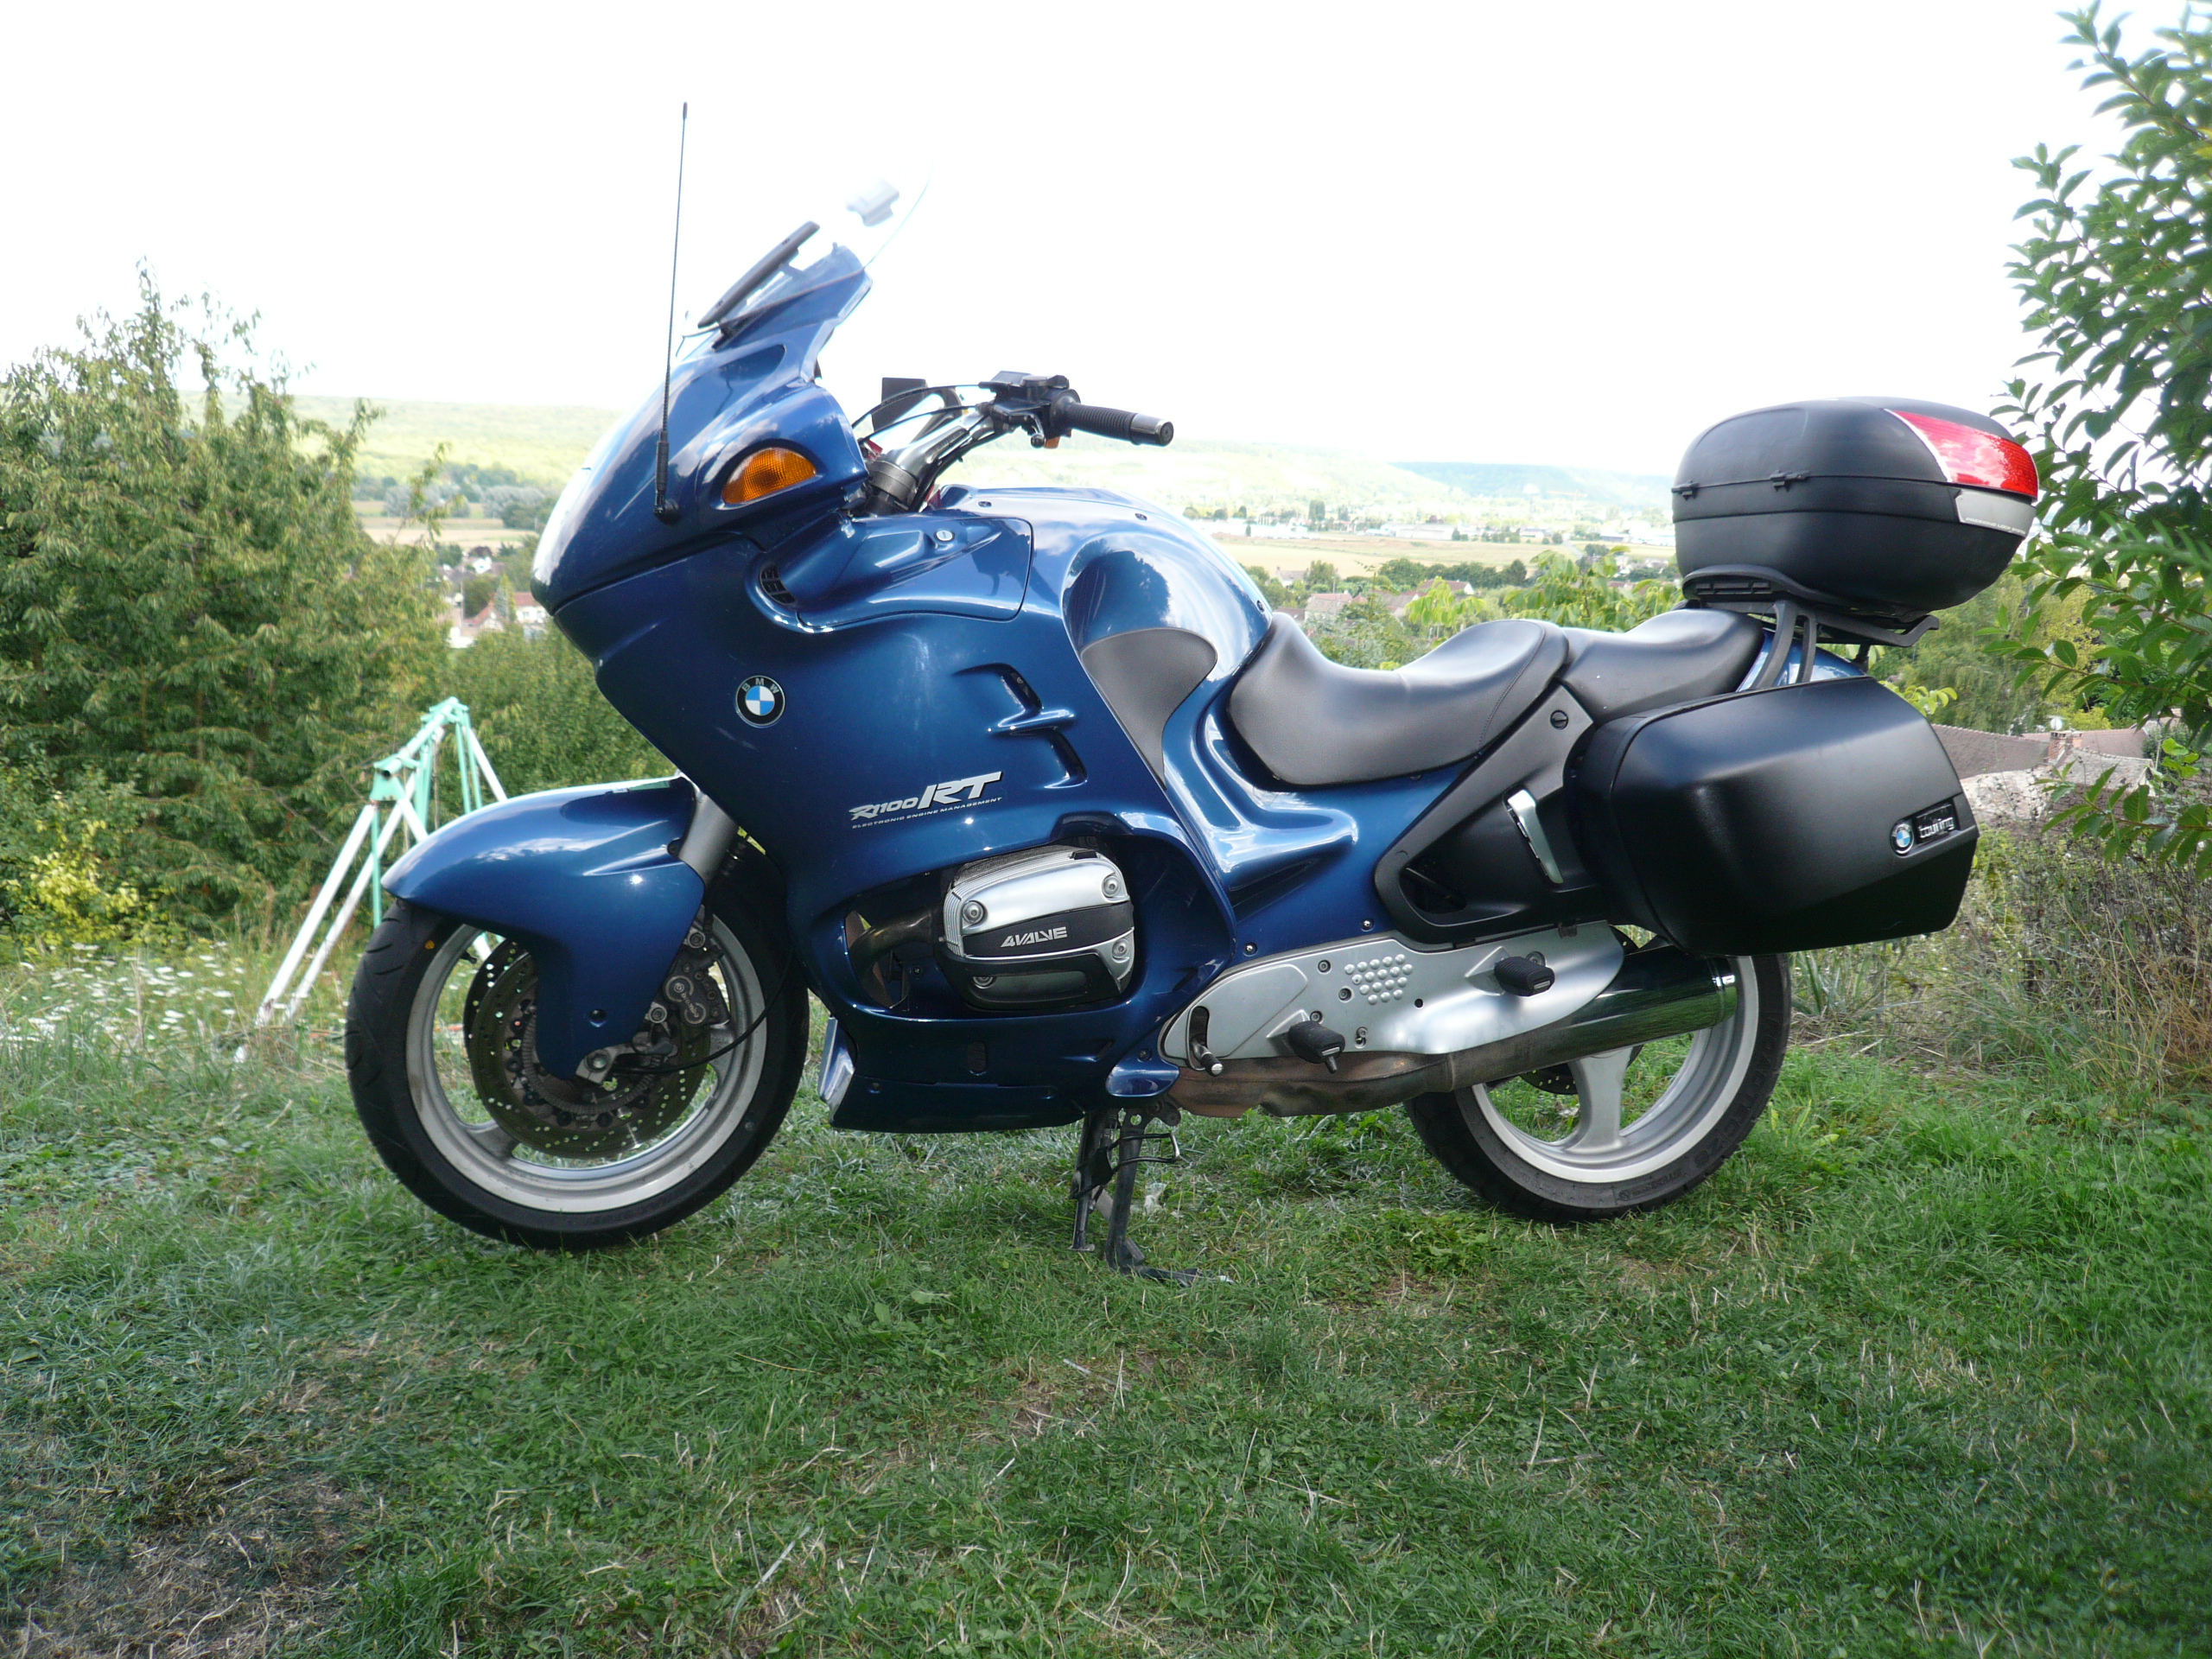 ... r 1100 rt rs 1993 2001 service repair manual Array - hackerschicken rh  hackerschicken eu bmw r1100rt ...